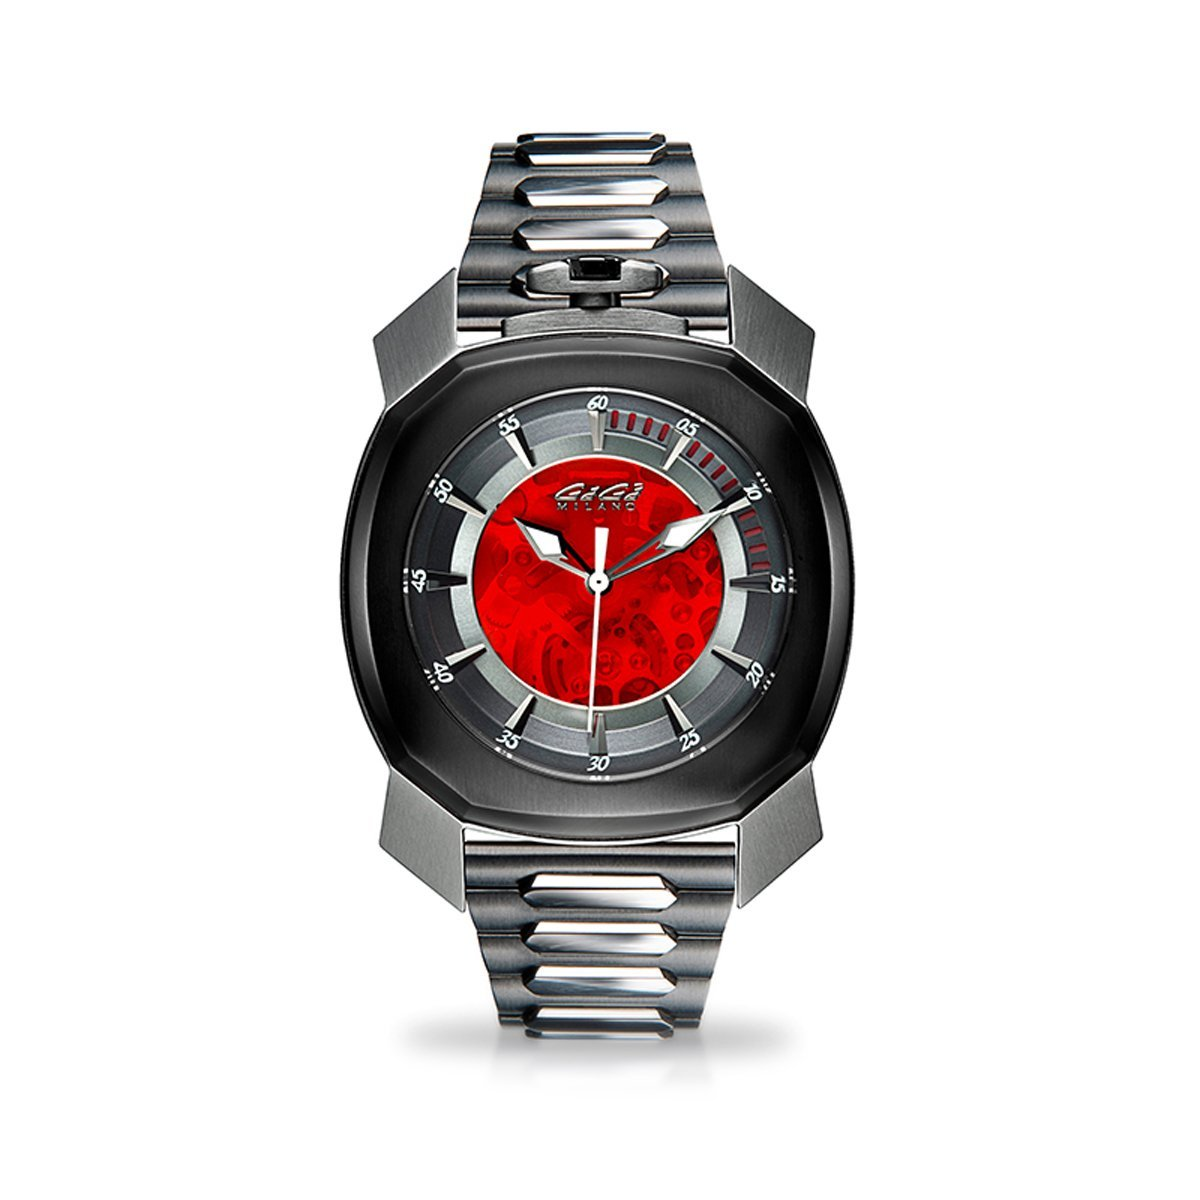 Gaga Milano Frame_One Skeleton Red - Watches & Crystals